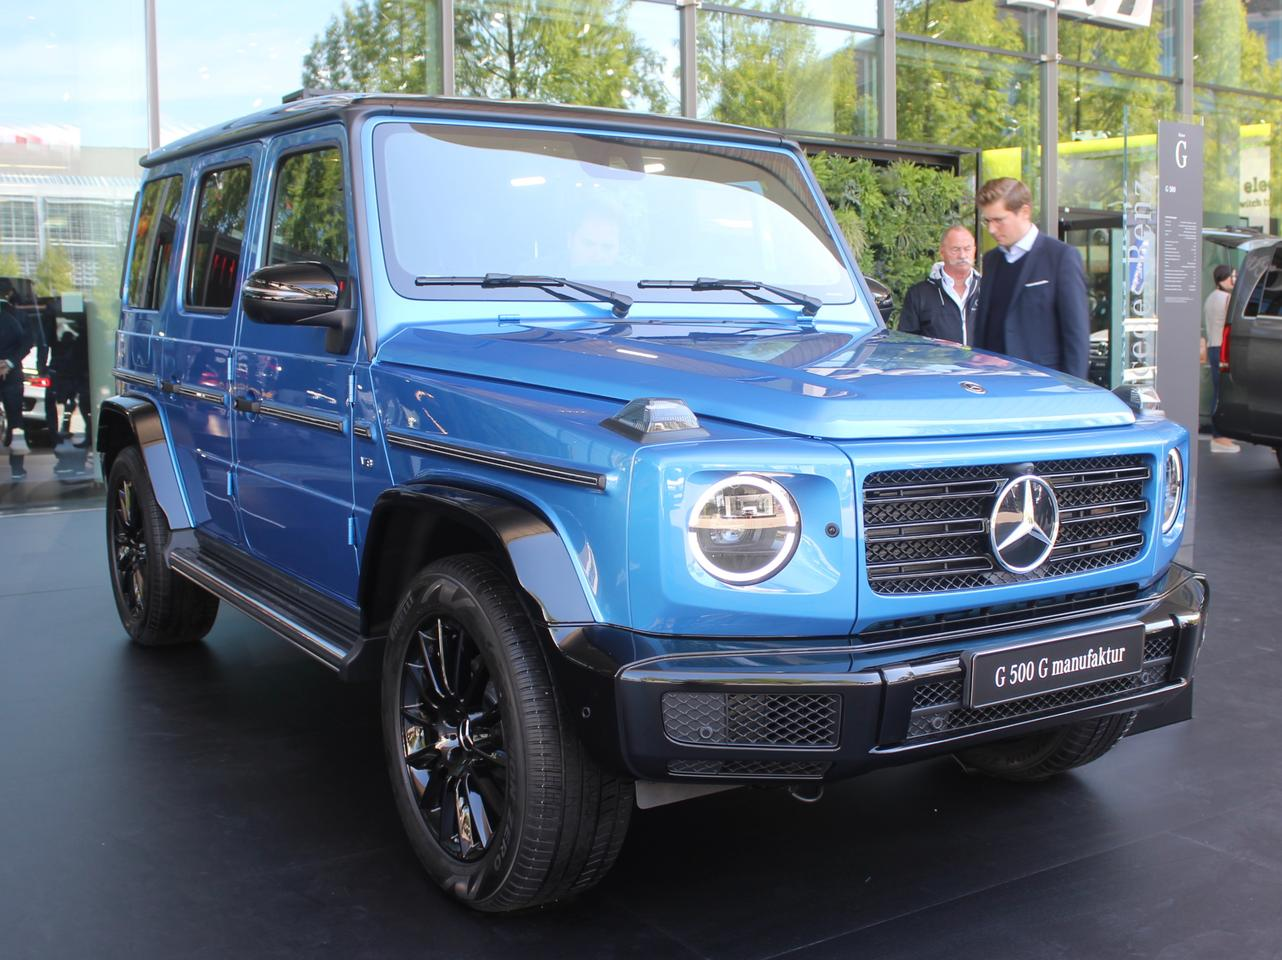 Mercedes-Benz highlights the G-Class individualization program, G manufaktur